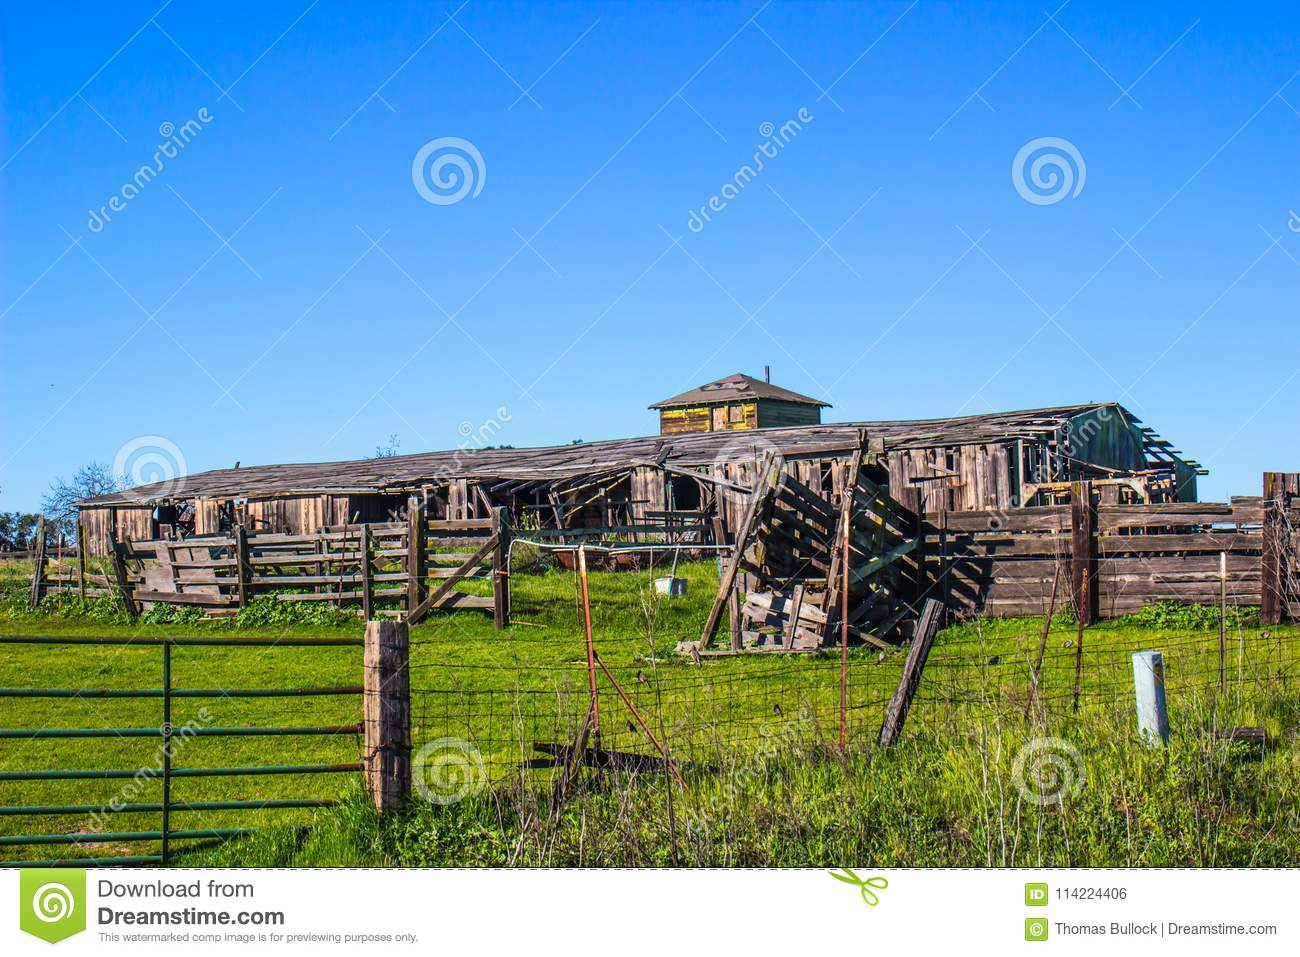 Vintage Barn & Wooden Fencing With Cattle Ramp In Disrepair